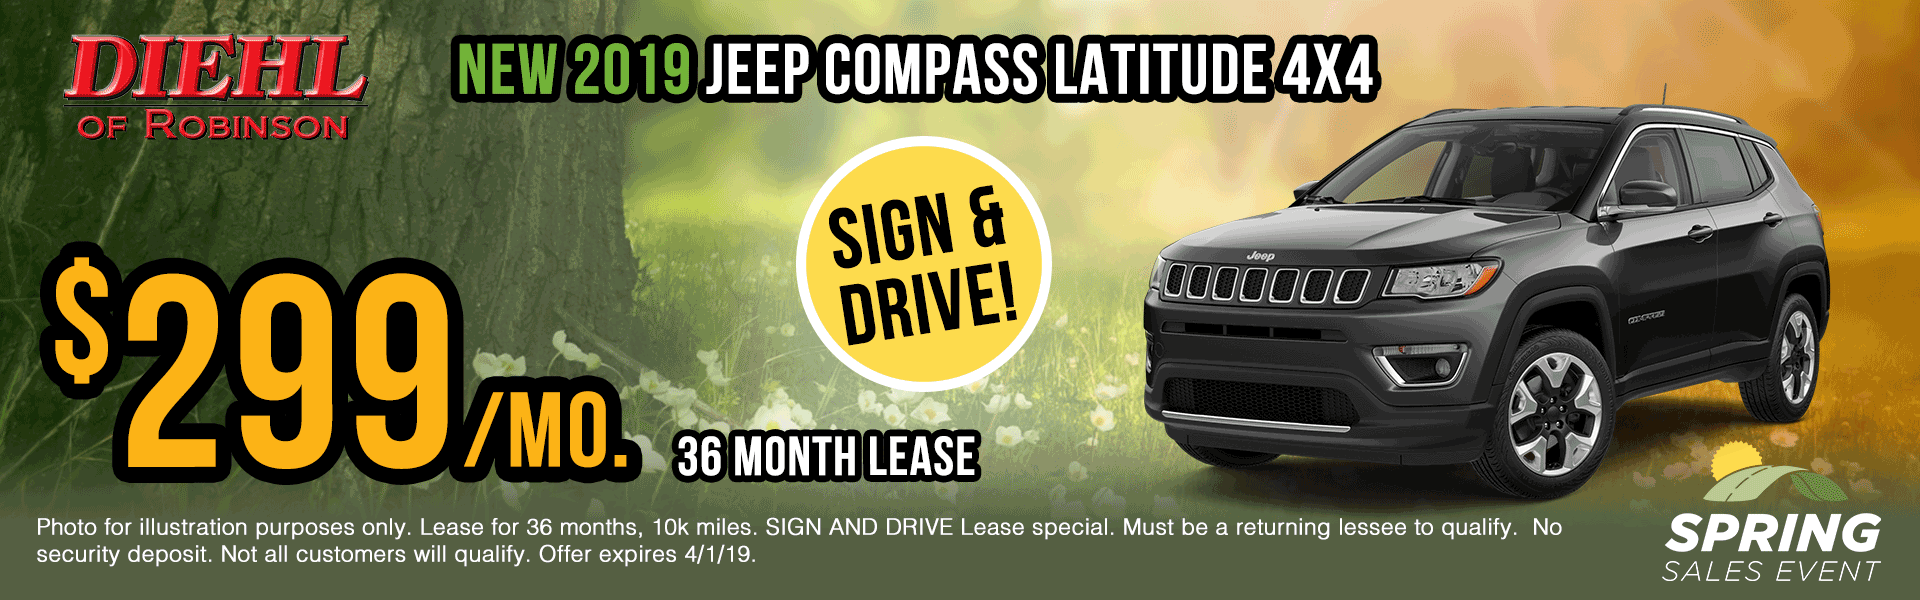 19J1057-2019-jeep-compass-latitude Spring sales event jeep specials Chrysler specials ram specials dodge specials mopar specials new vehicle specials Diehl automotive Diehl Robinson Diehl of Robinson specials sign and drive lease specials